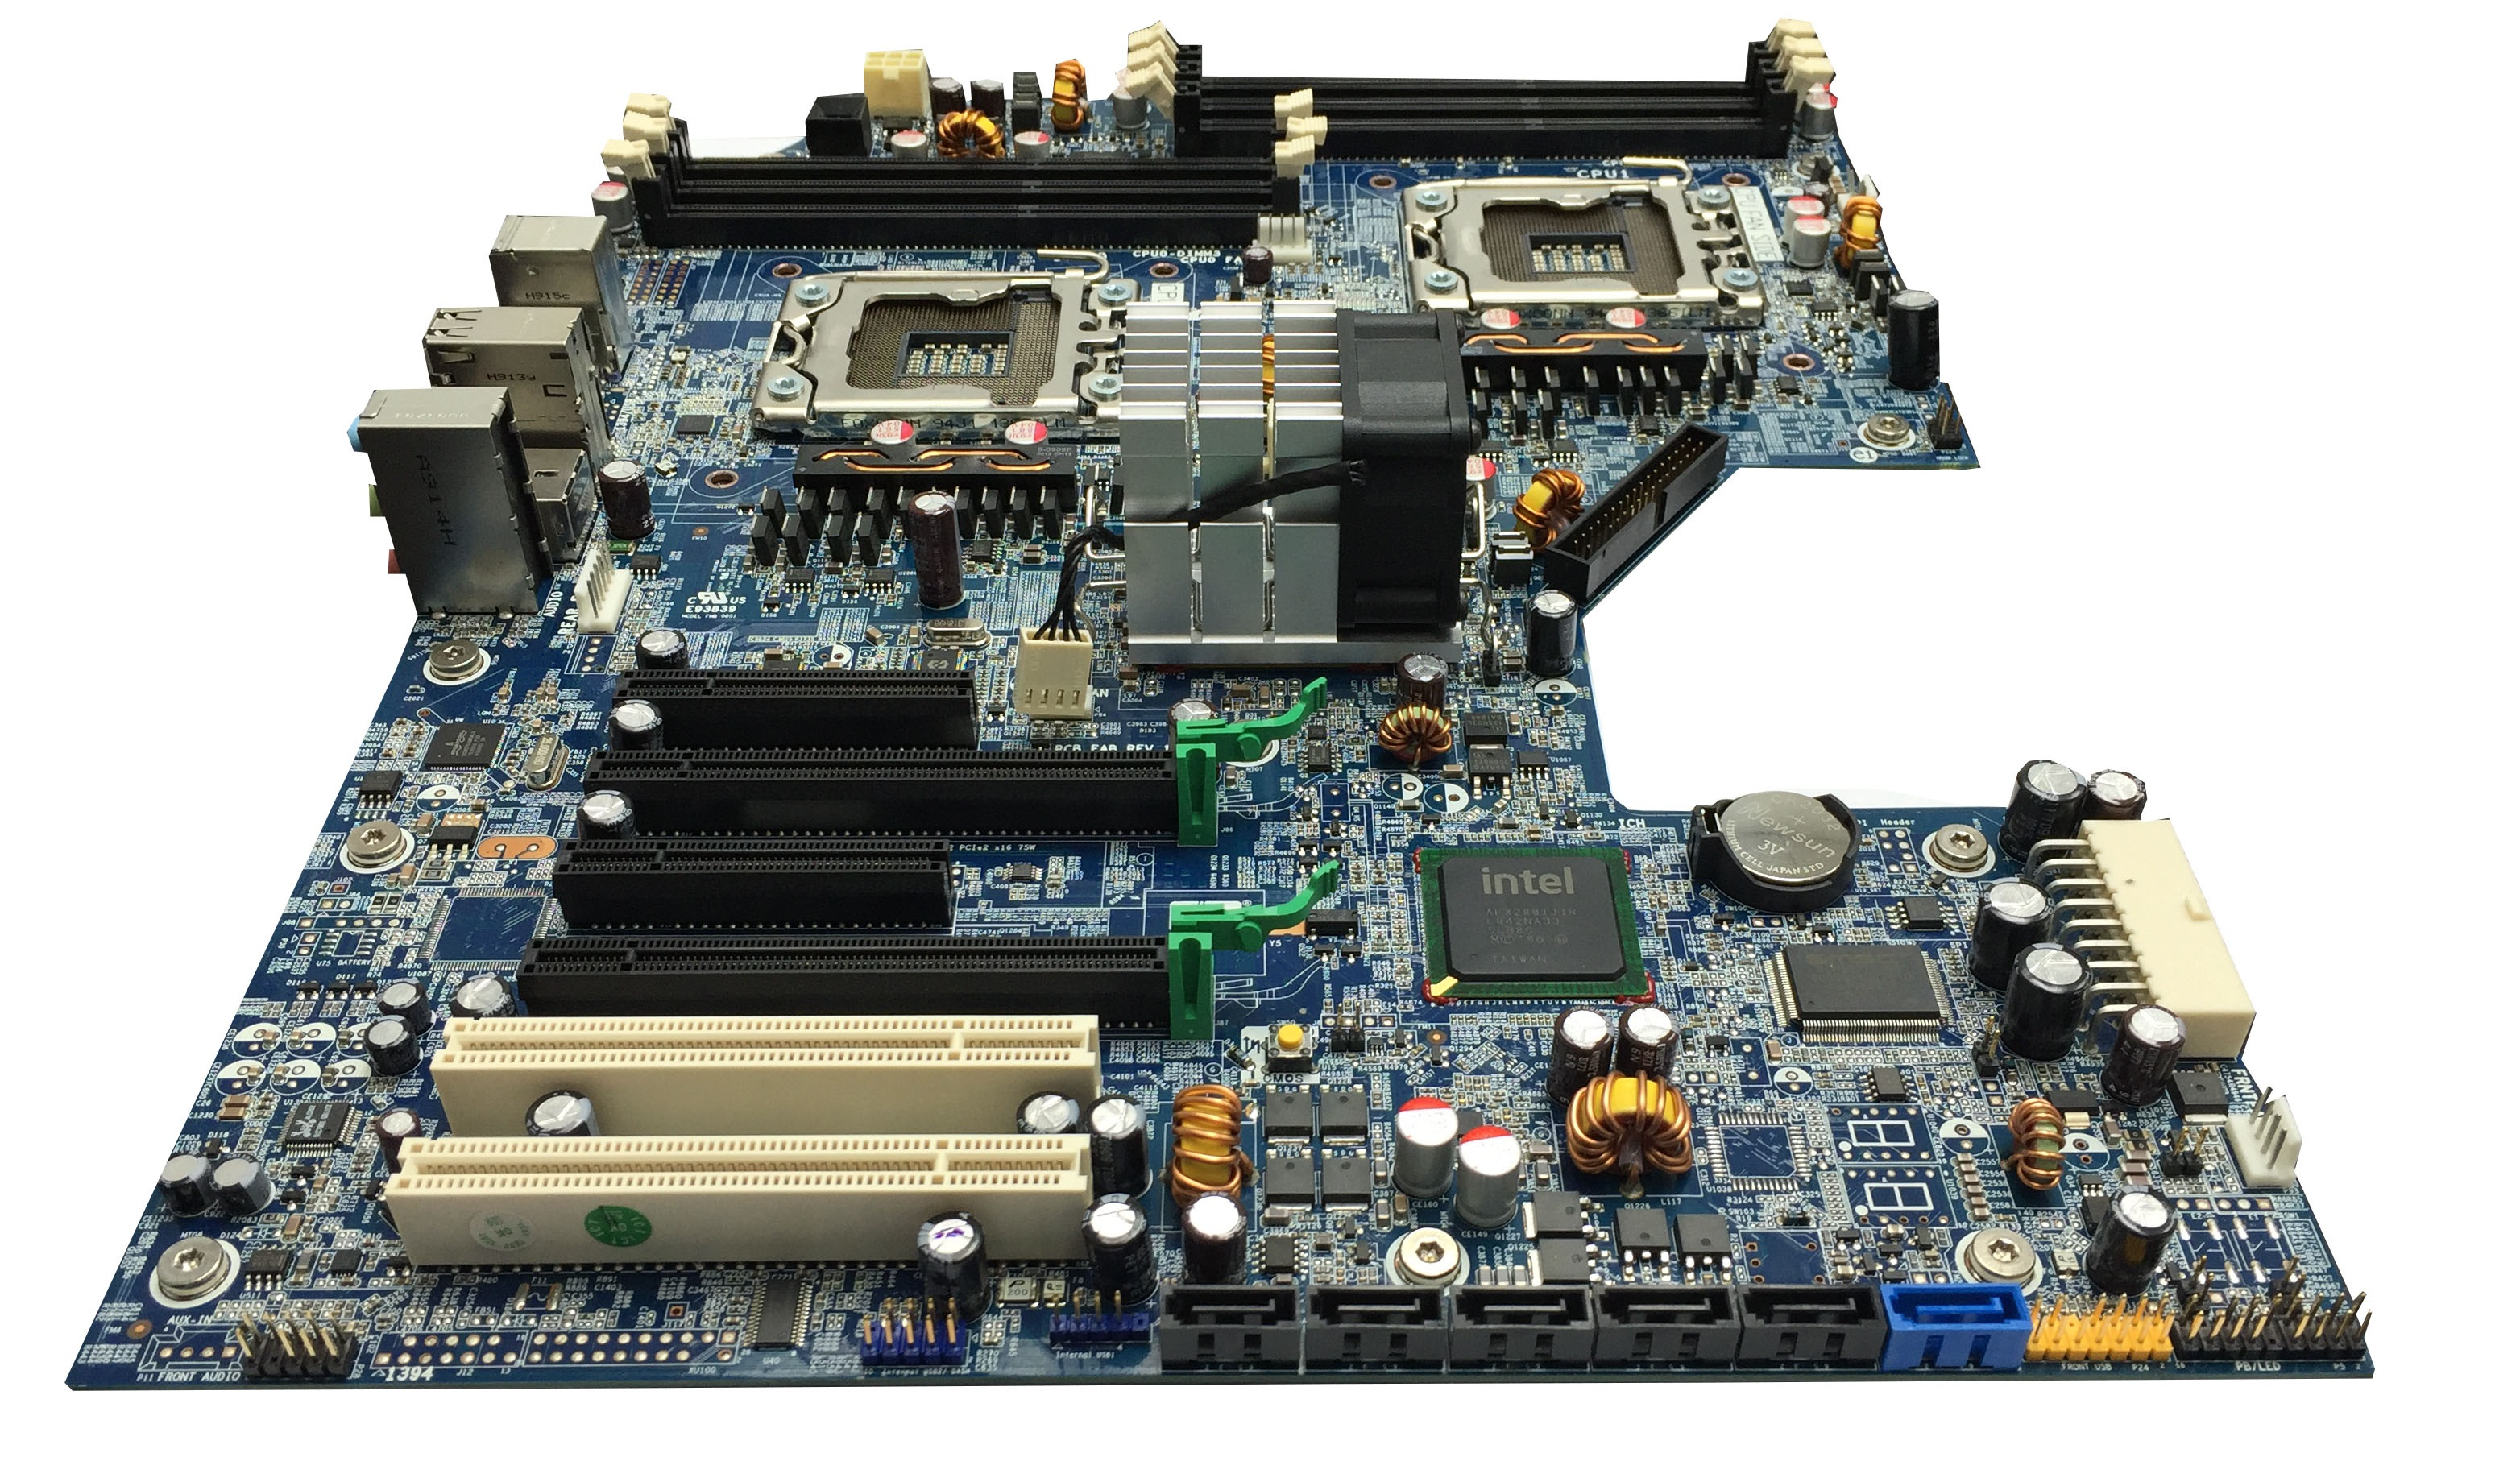 HP Z600 WorkStation Intel Tylersburg System Board (461439-001)